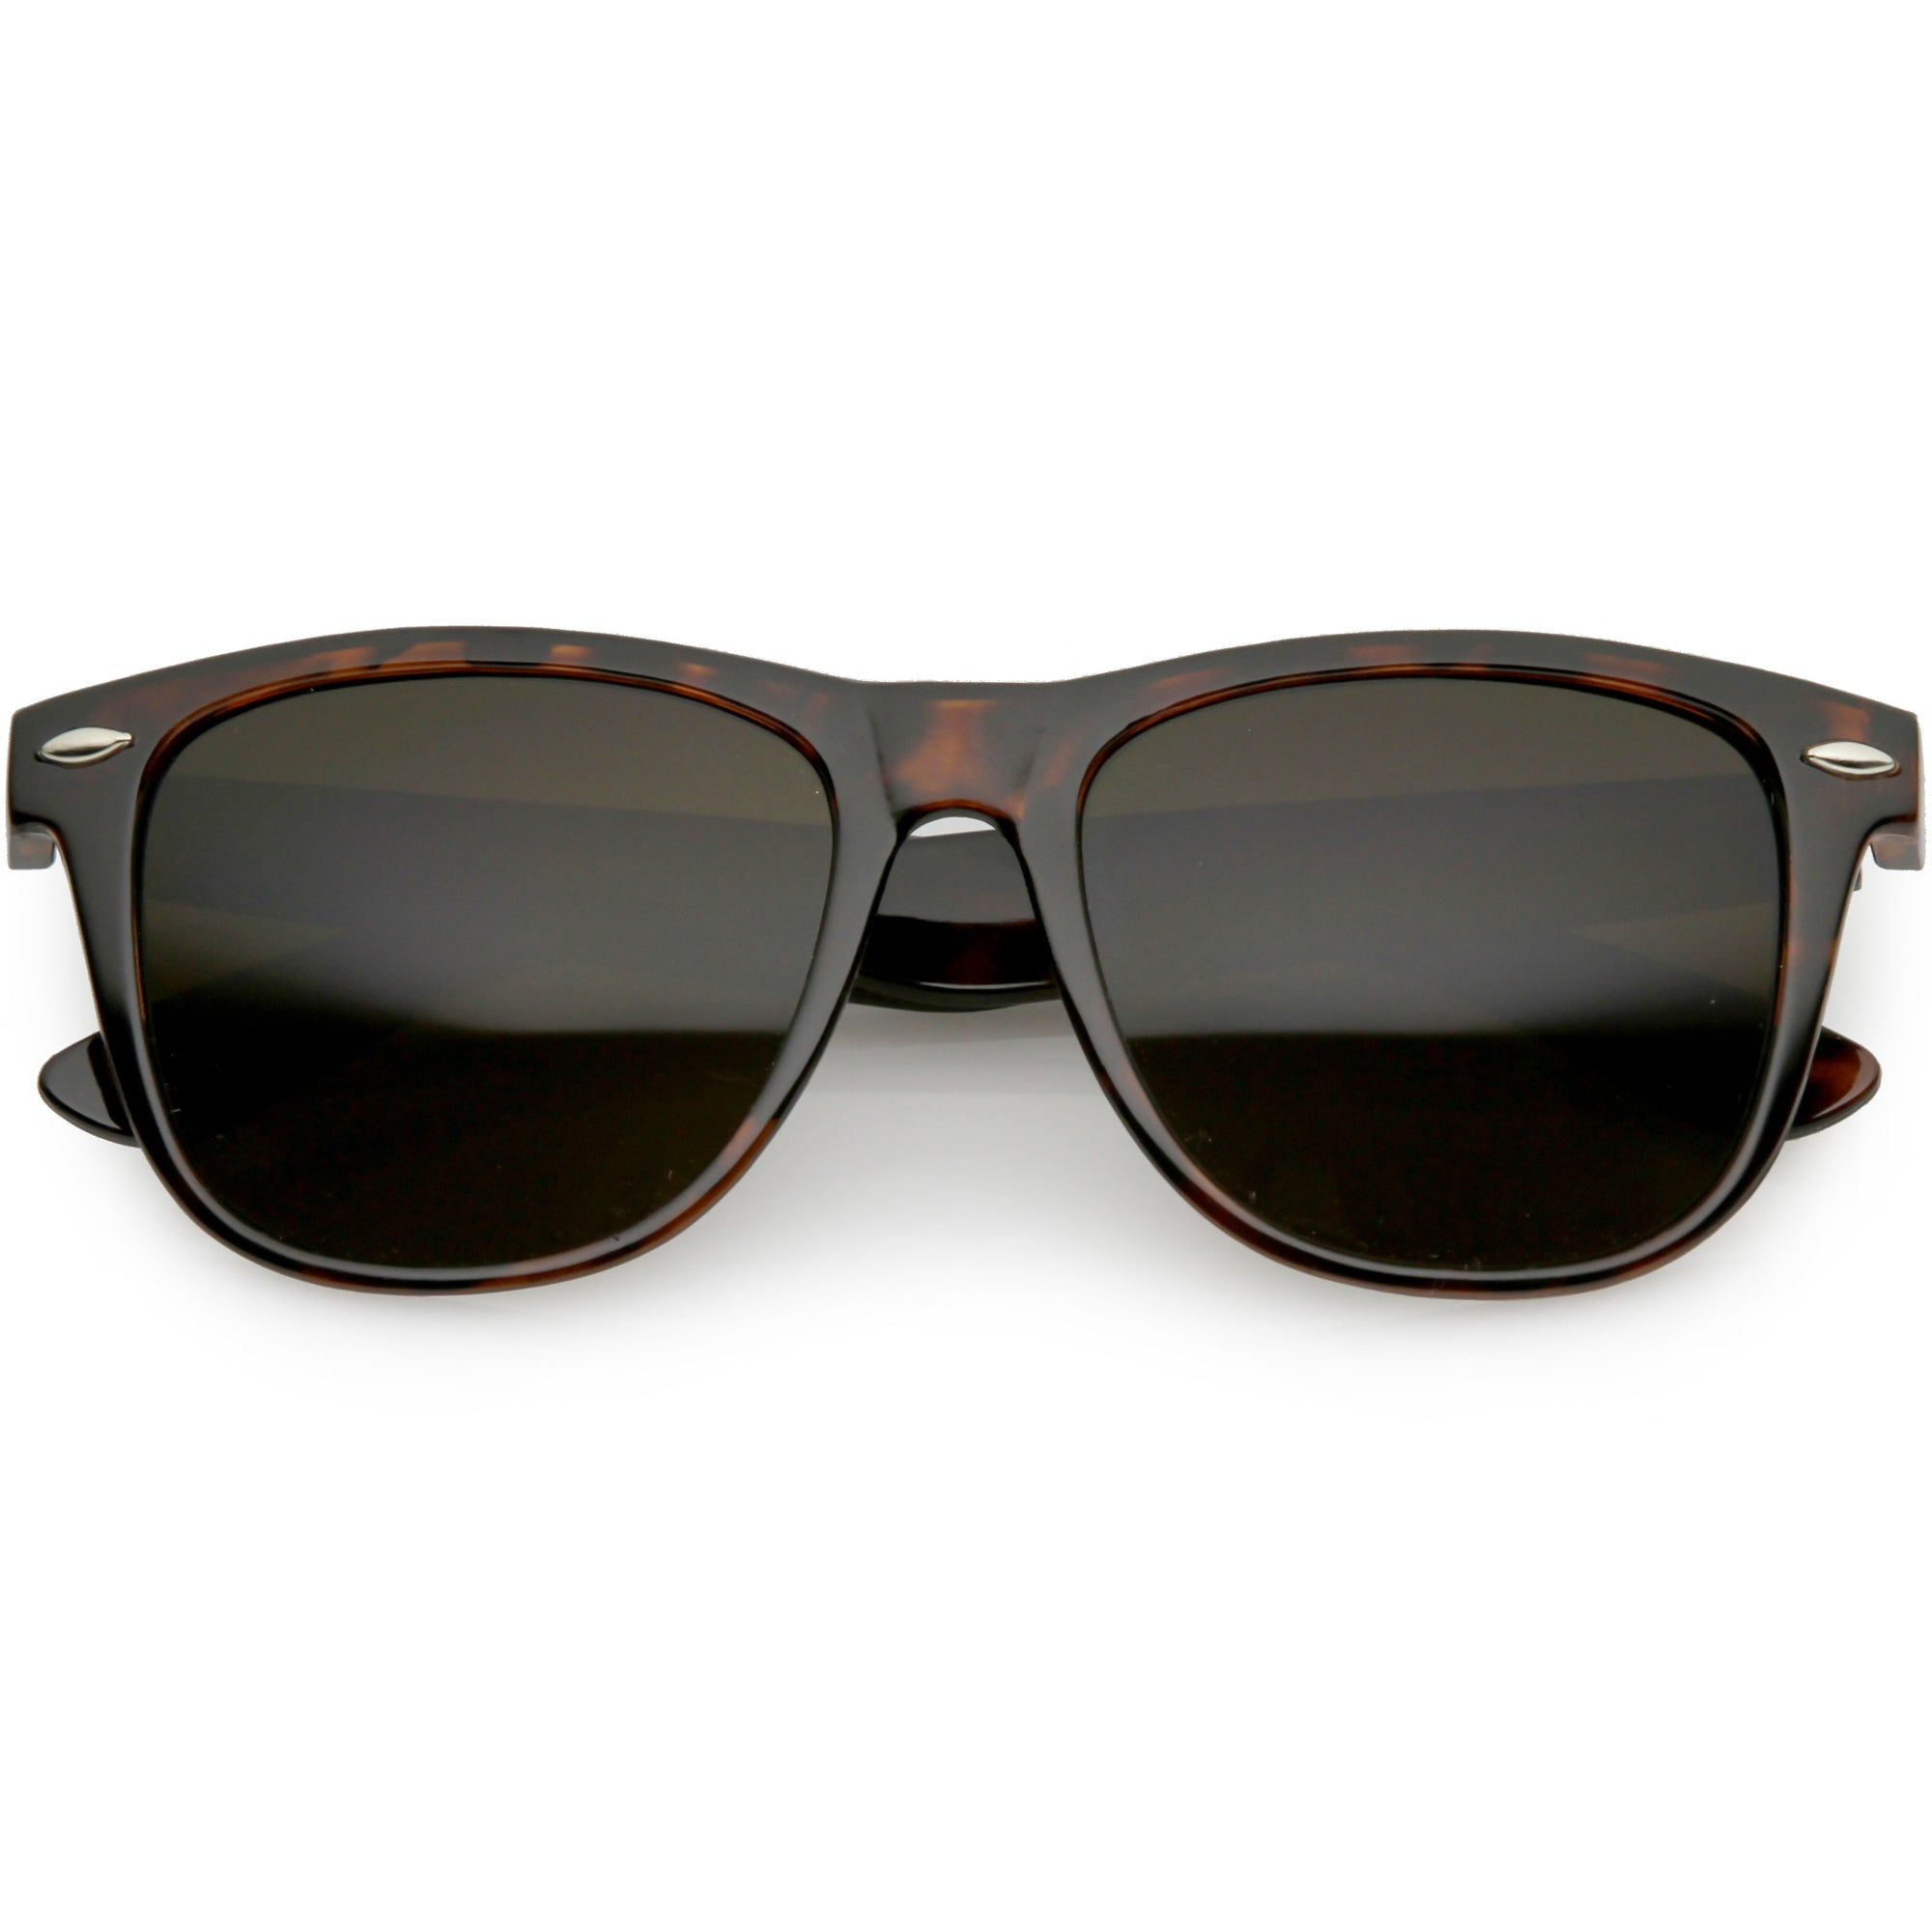 Classic Retro Indie Classic Horned Rim Sunglasses 54mm C767